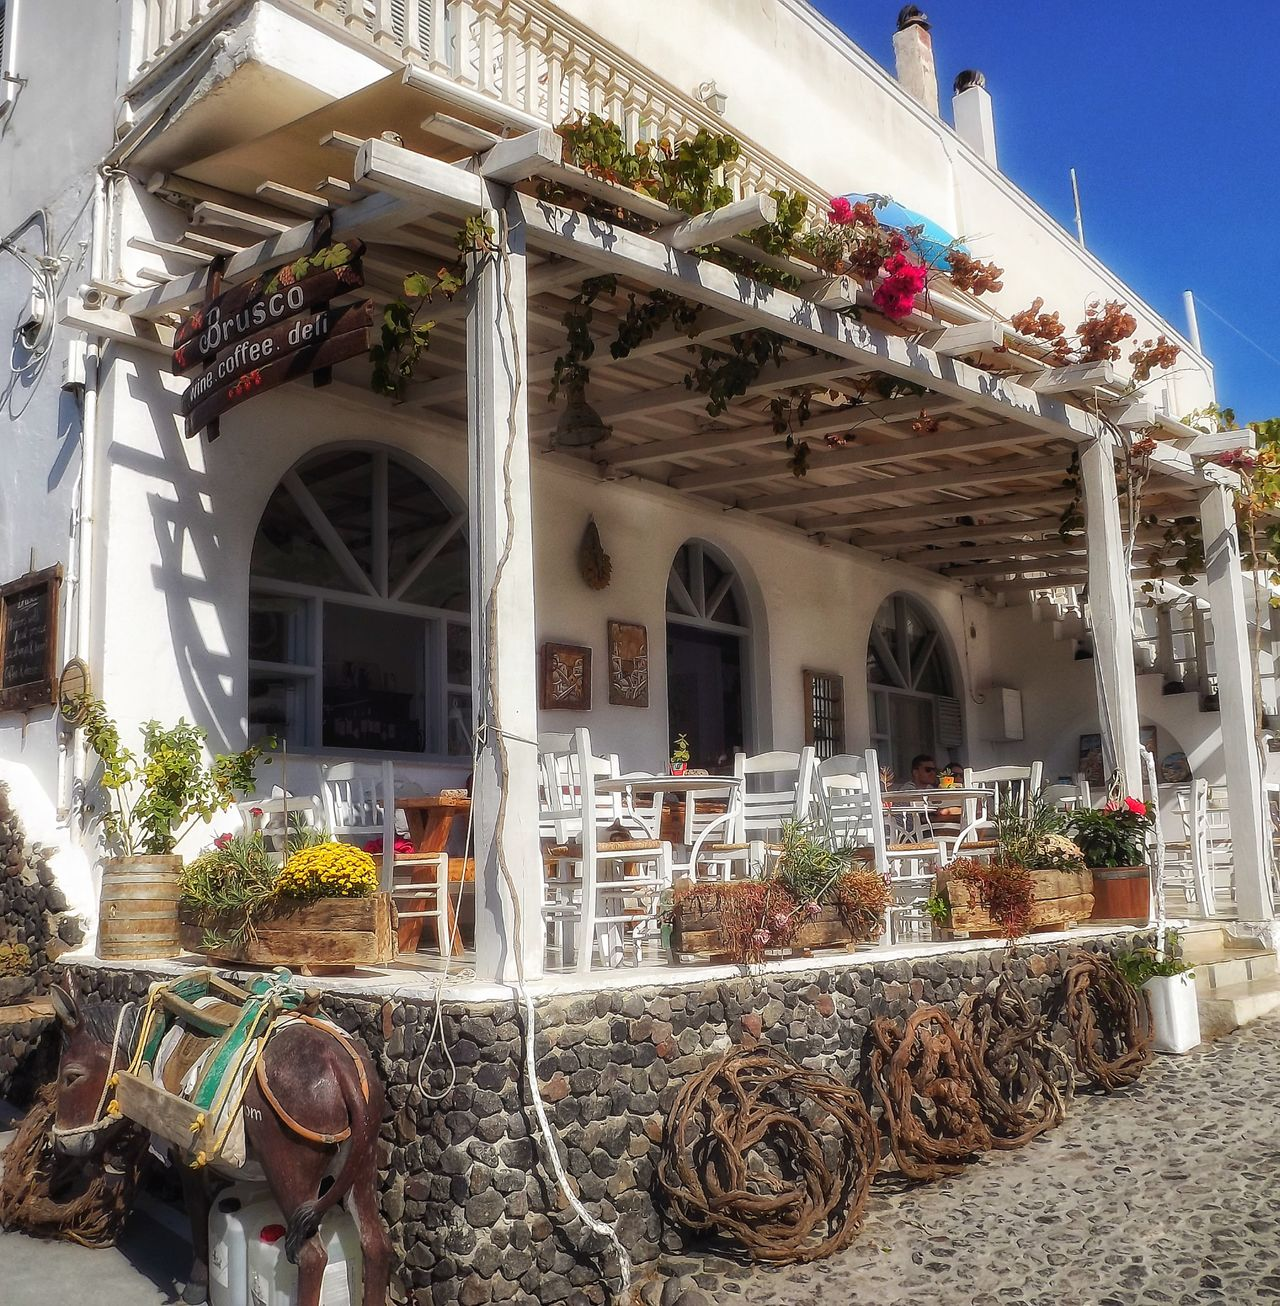 Traditional Greek coffee shop Architecture Outdoors No People Greek Beauty Tourism Landscape_photography EyeEm Masterclass Travel Destinations Santorini, Greece Malephotographerofthemonth Hdr_captures Fujifilm Creative Light And Shadow Color Photography Architecture Coffee Shop Coffeehouse Greek Coffee  Santorinigreece Portrait_shots